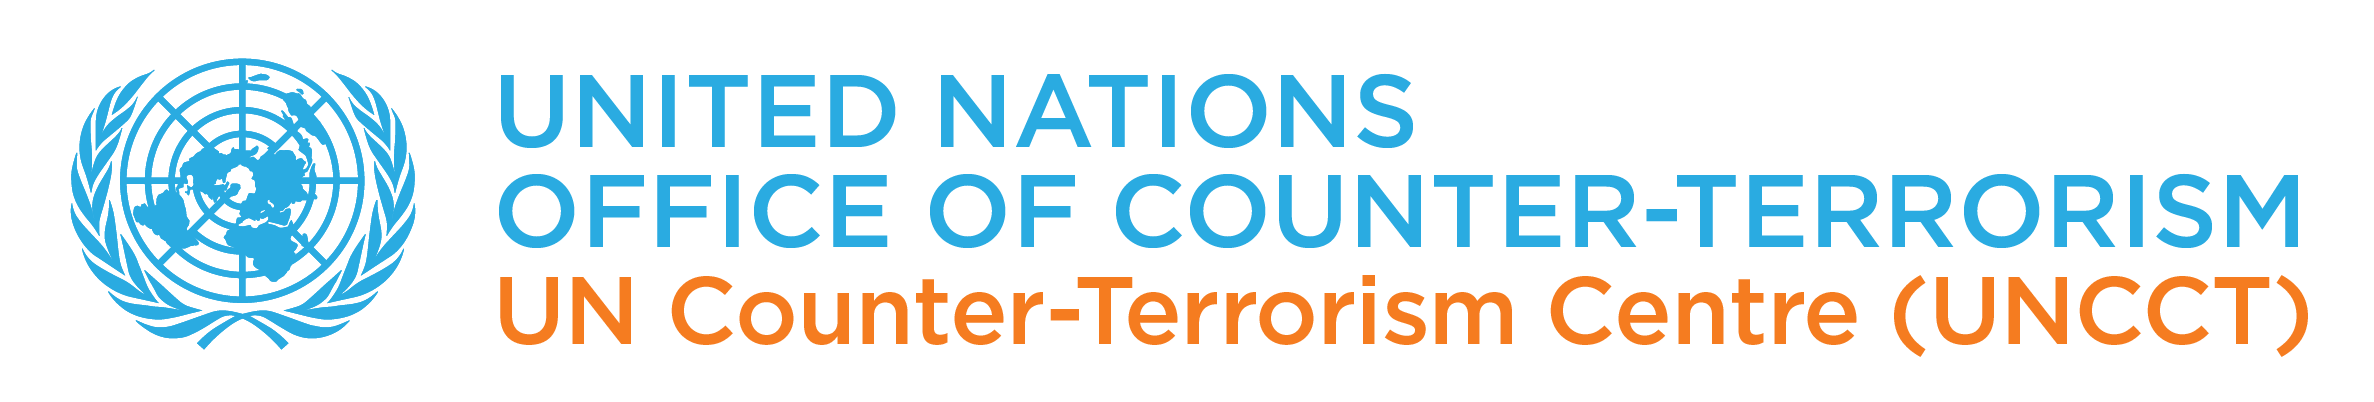 United Nations Office of Counter-Terrorism - Counter-Terrorism Centre